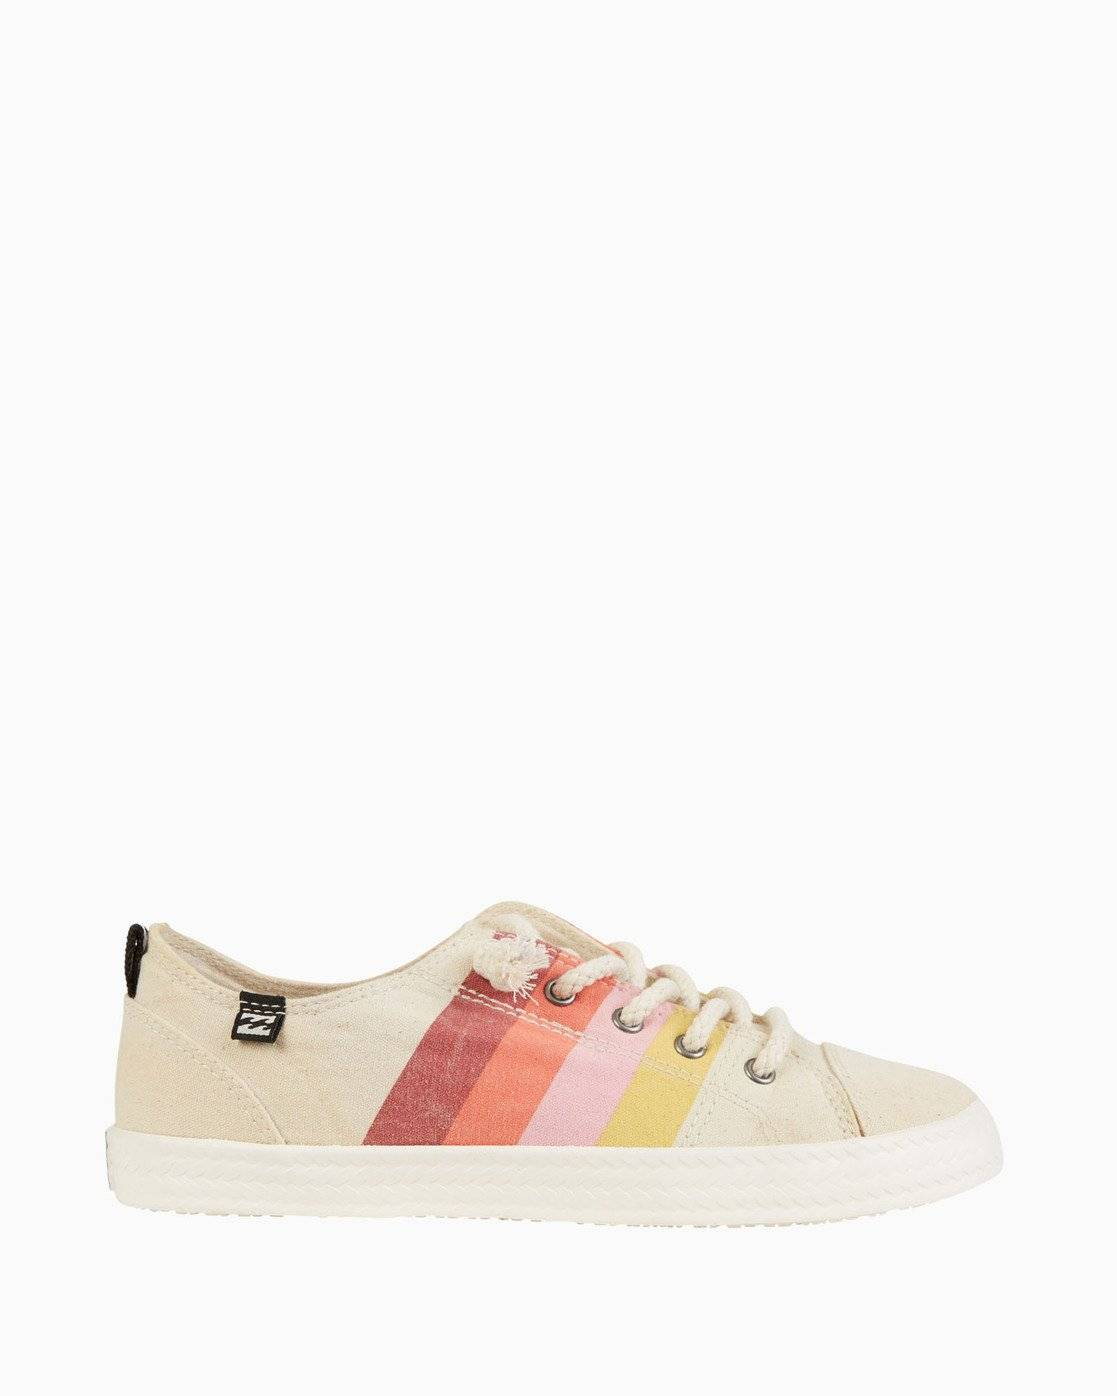 Billabong Marina Canvas Shoes  - Orange - Size: 10